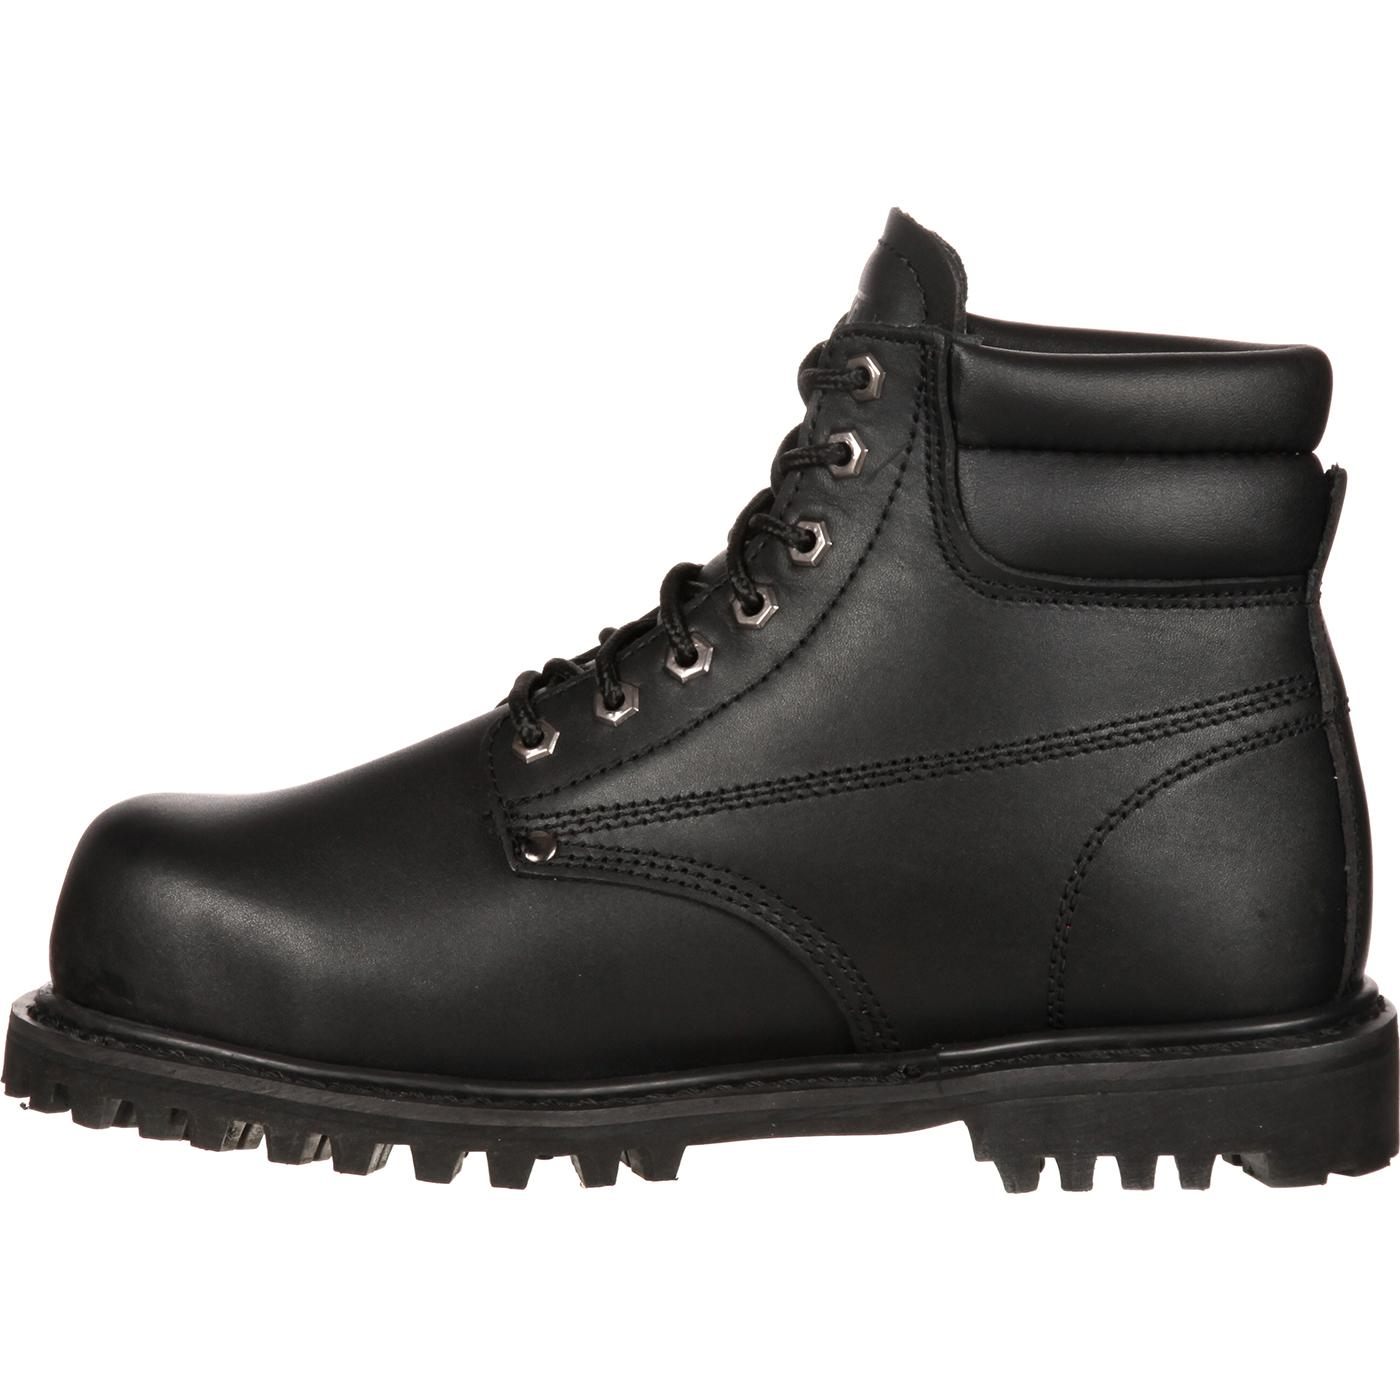 Amazing Nike Work Boots Steel Toe | Www.pixshark.com - Images Galleries With A Bite!